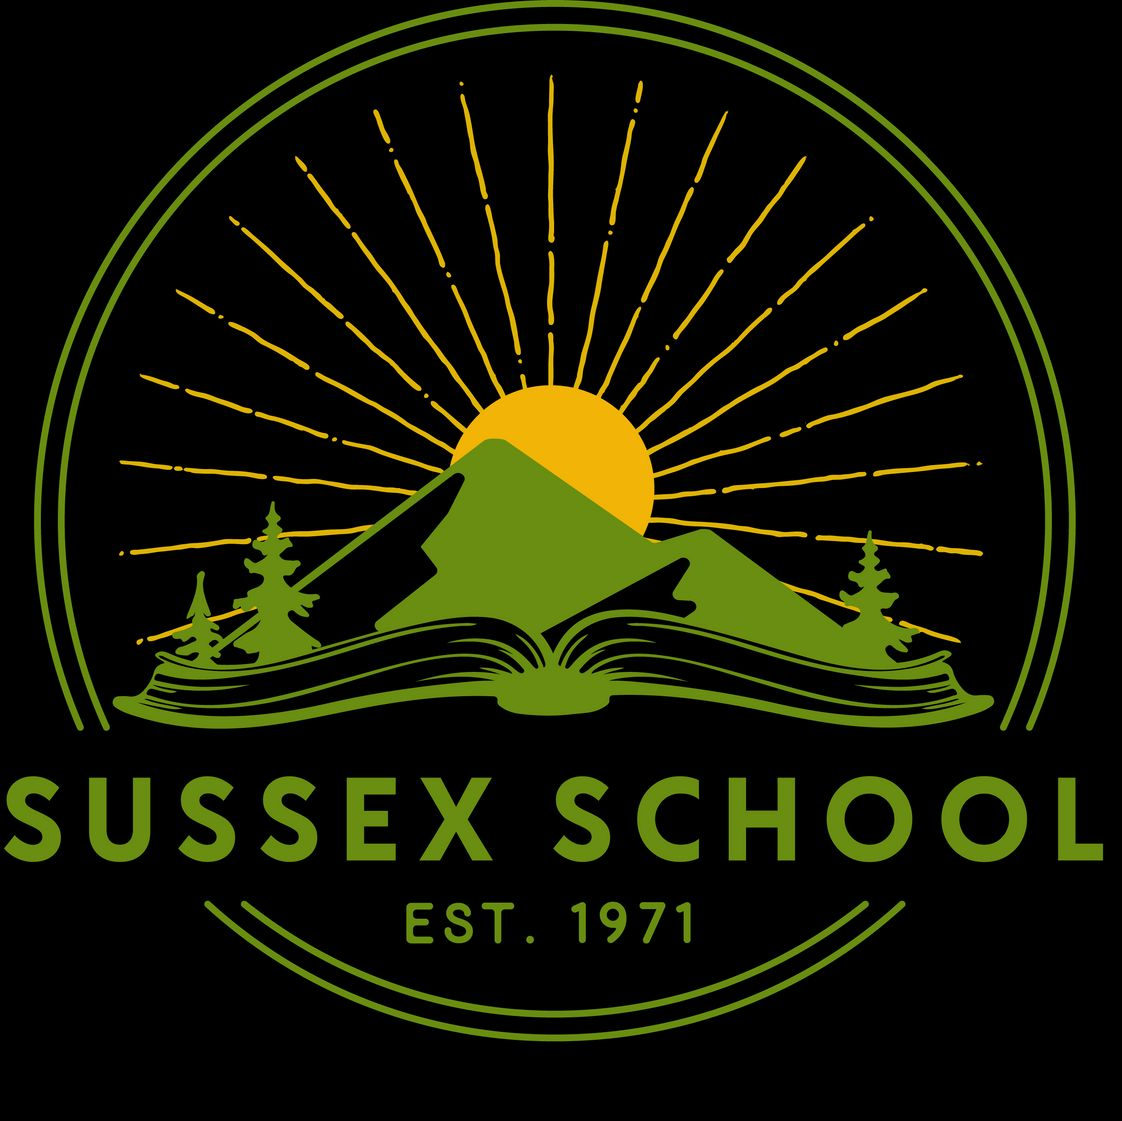 Sussex School Photo